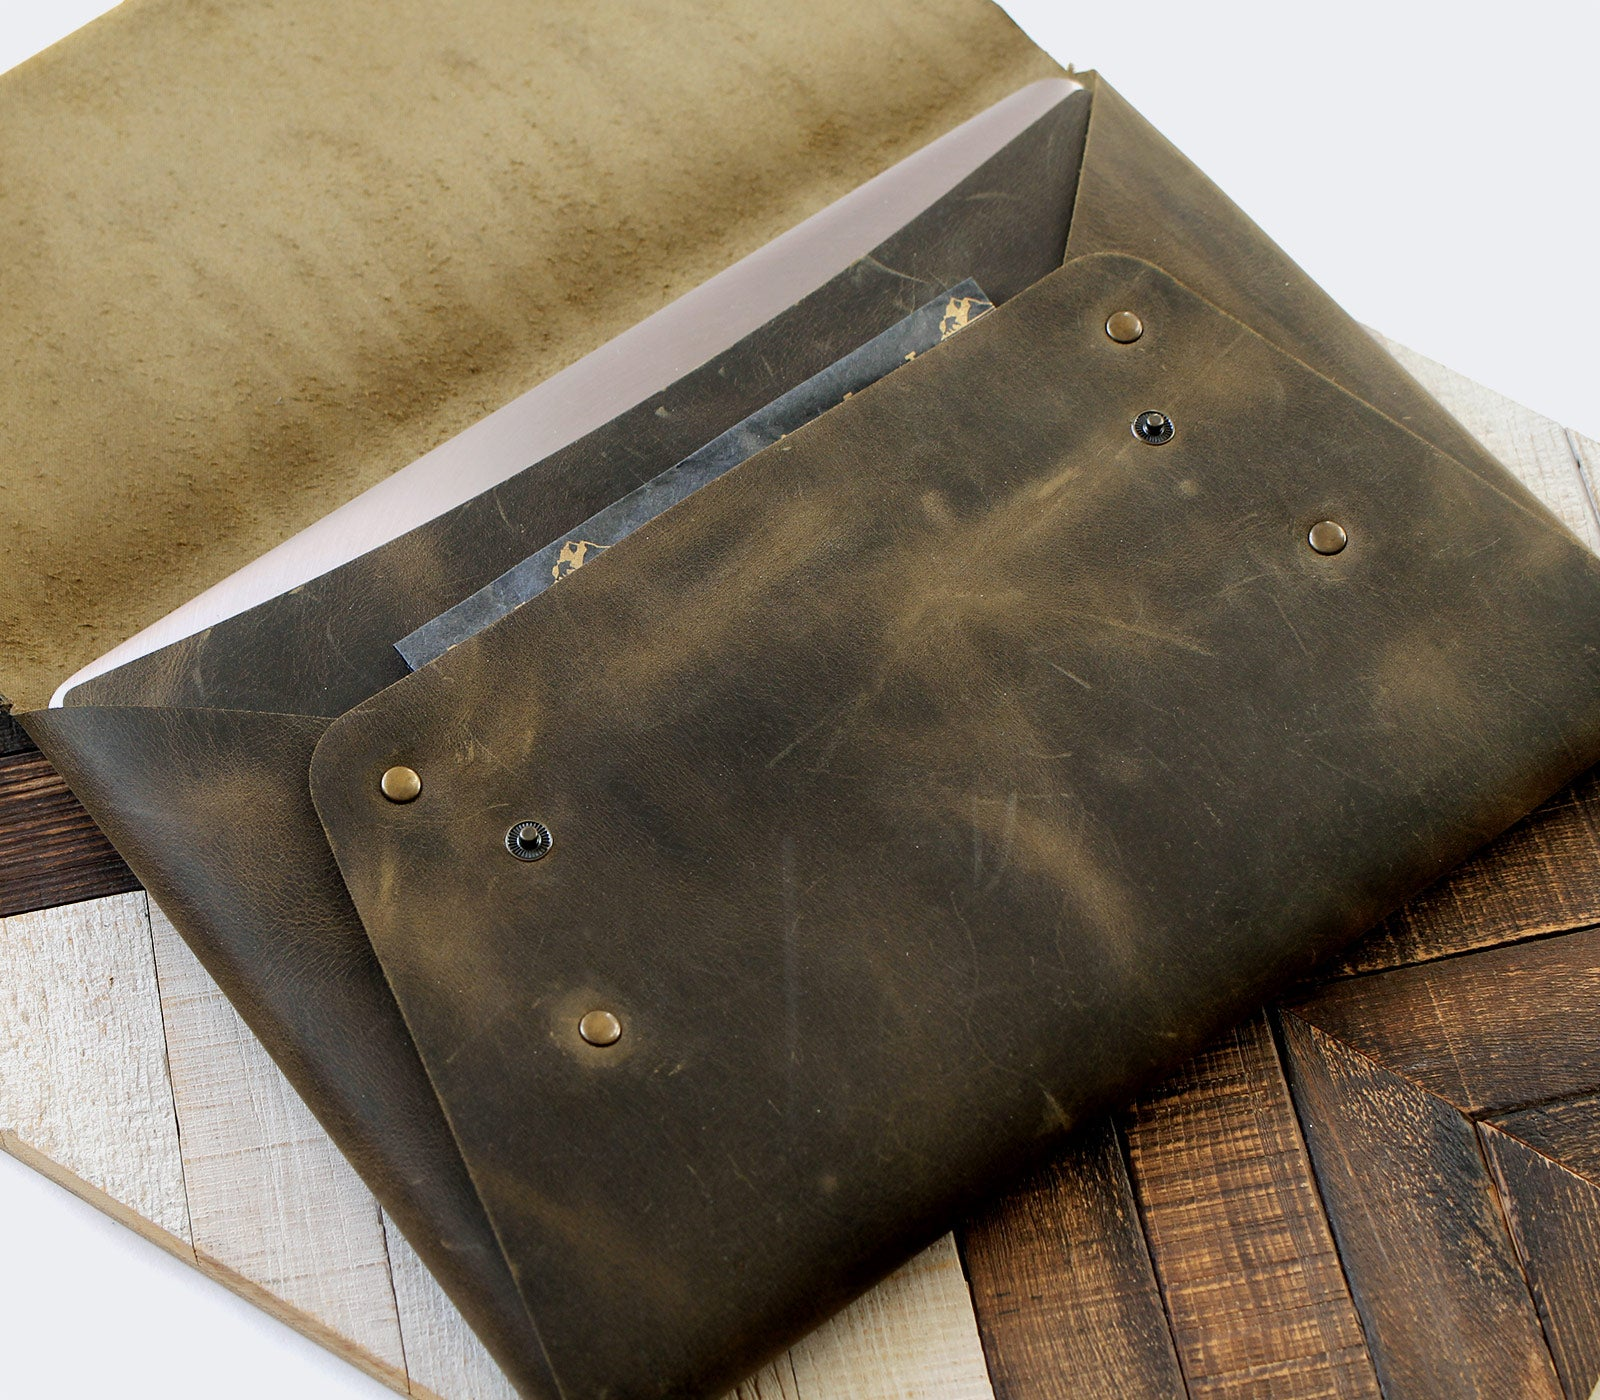 (NEW) Leather Macbook Case - Green